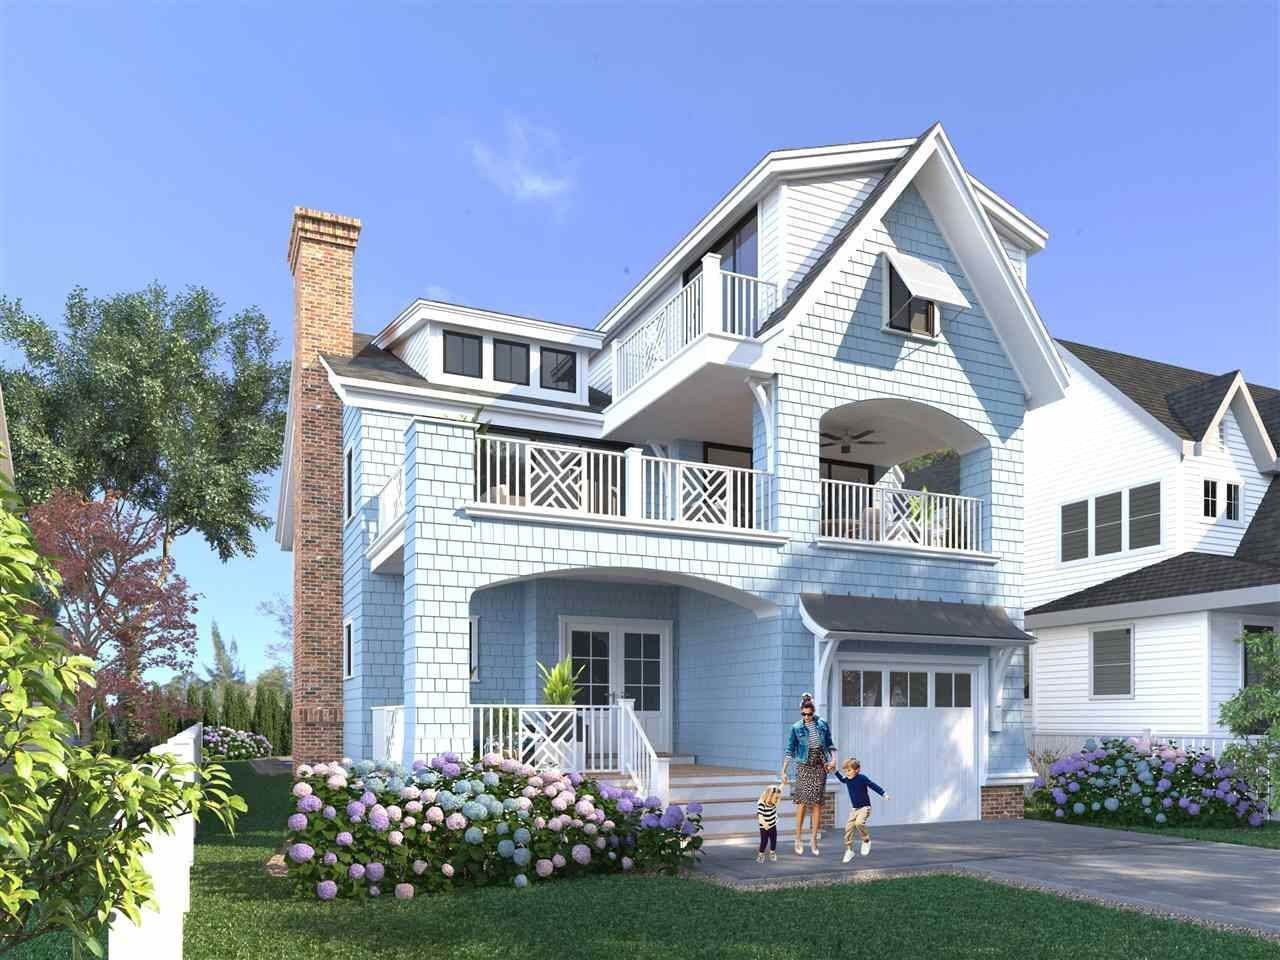 Single Family Homes for Sale at 24 E 19th Street Avalon, New Jersey 08202 United States